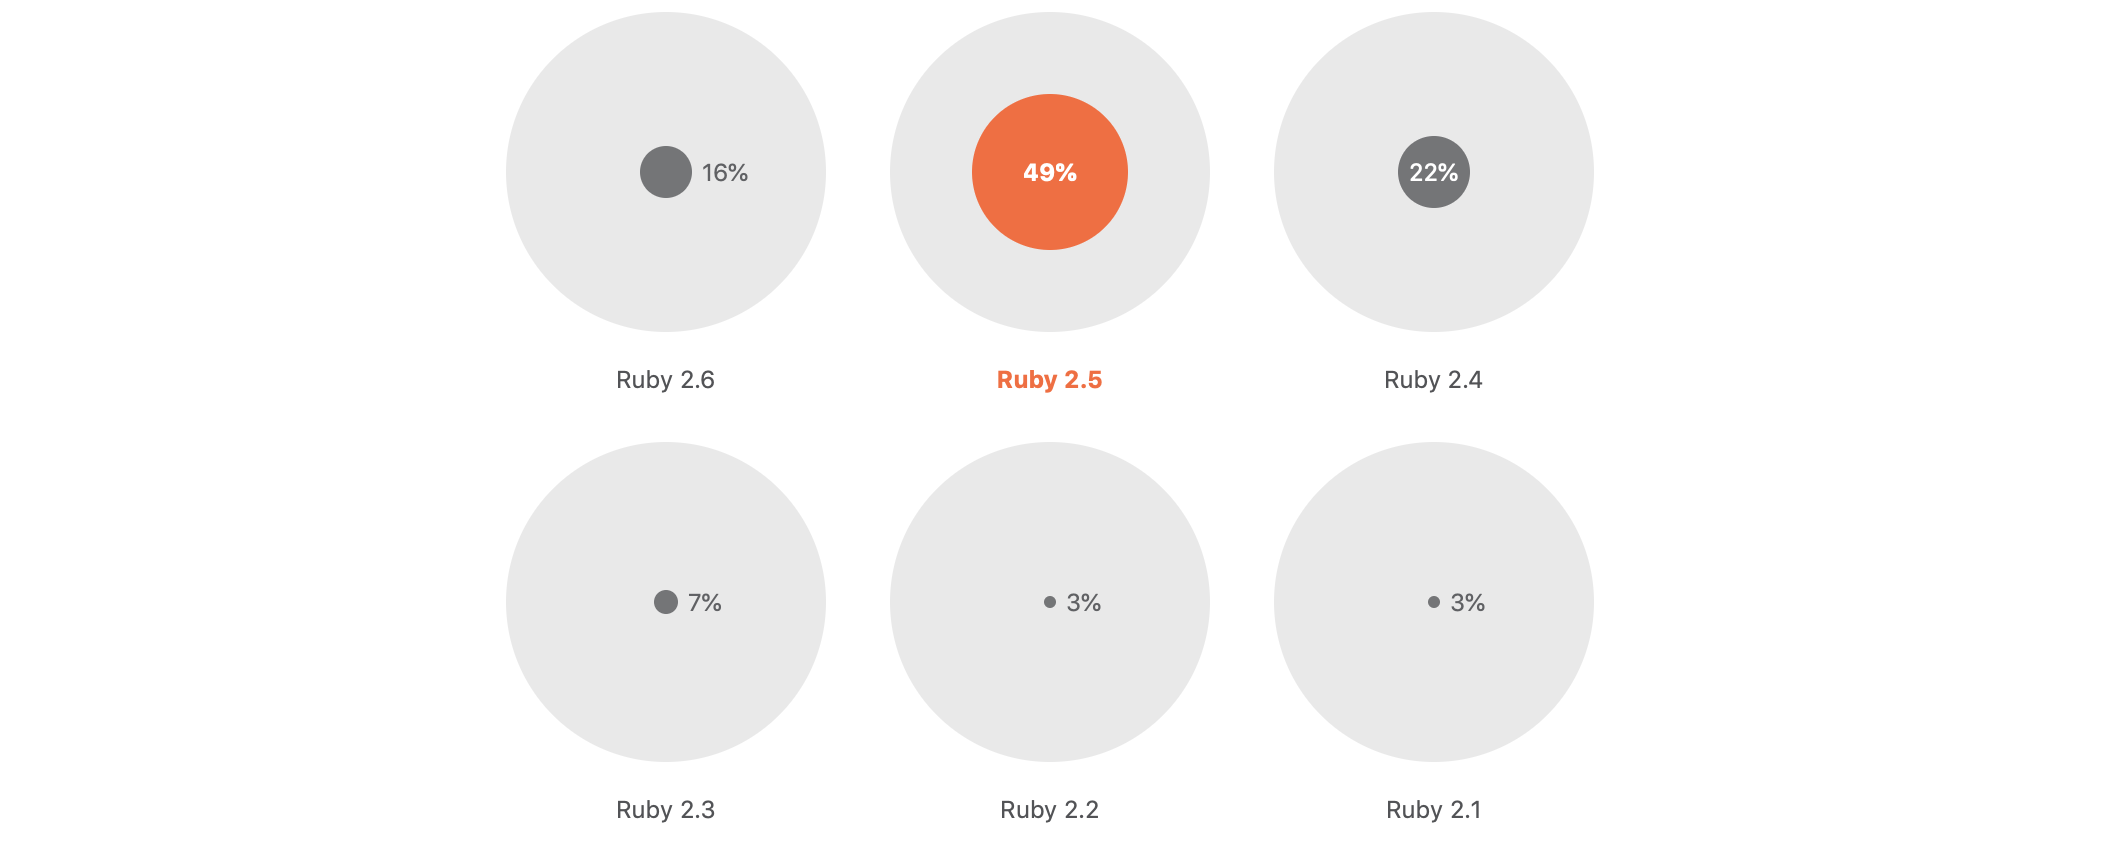 JetBrains dev ecosystem survey 2019: Ruby version